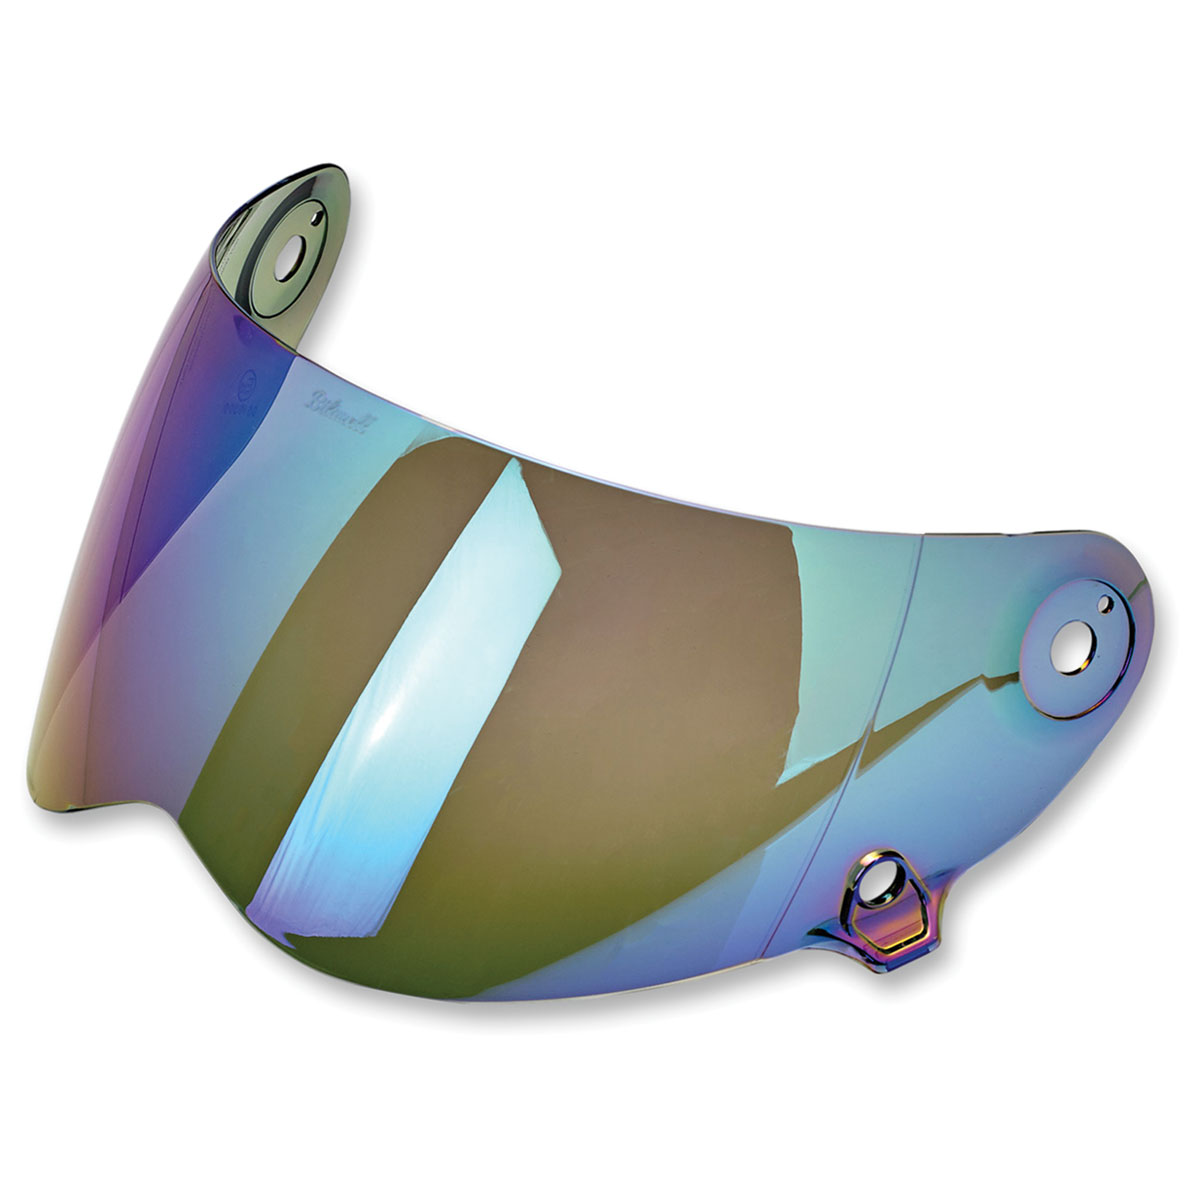 Biltwell Inc. Lane splitter Mirrored Rainbow Antifog Face Shield